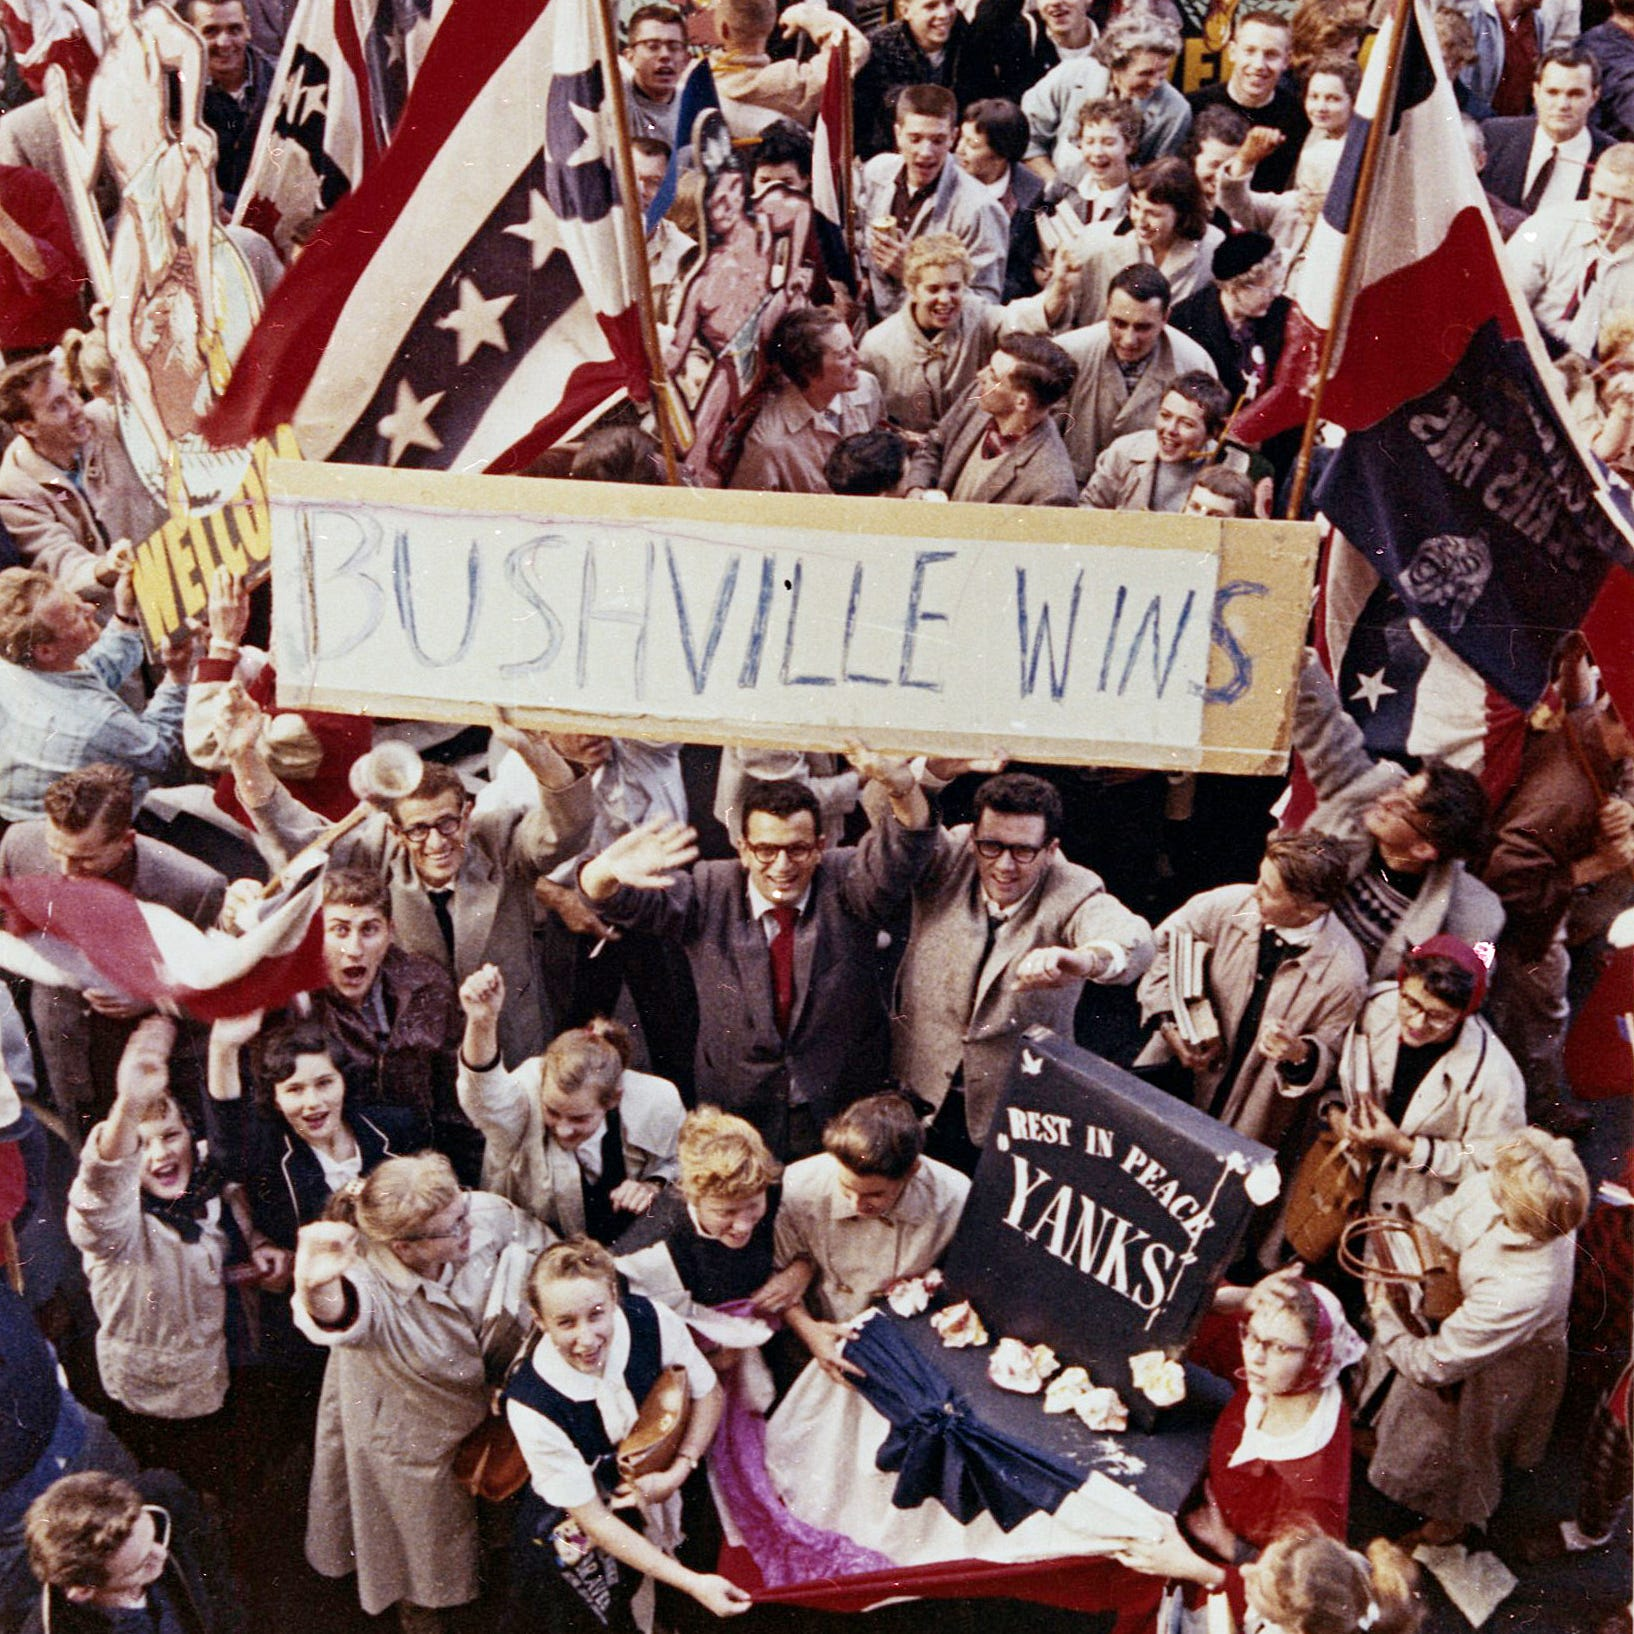 61 years ago today, the Milwaukee Braves won the World Series, and 'Bushville' won, too